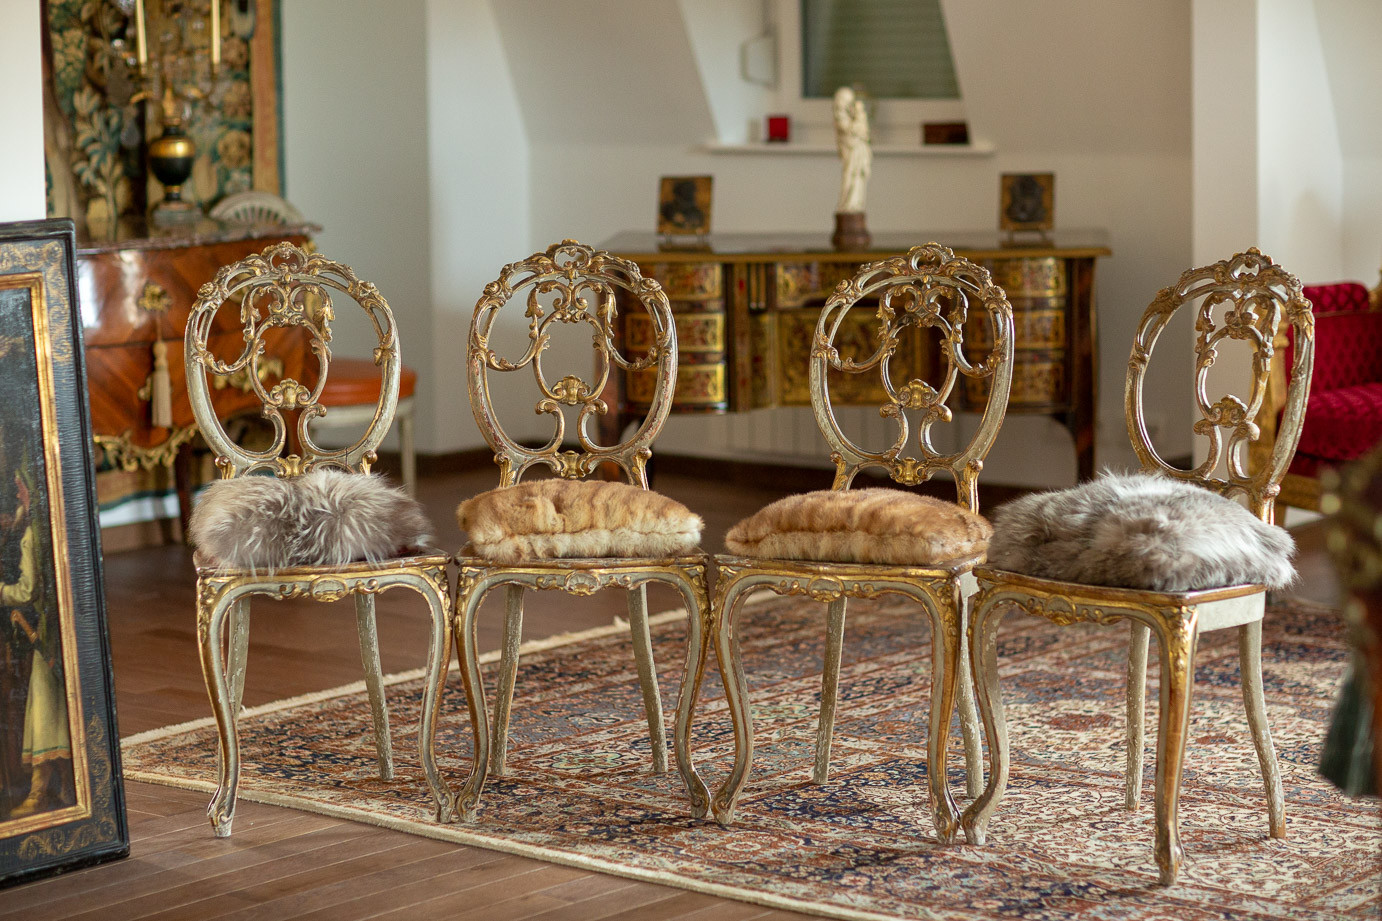 Four chairs made of painted and gilded wood from the imperial family of Russia